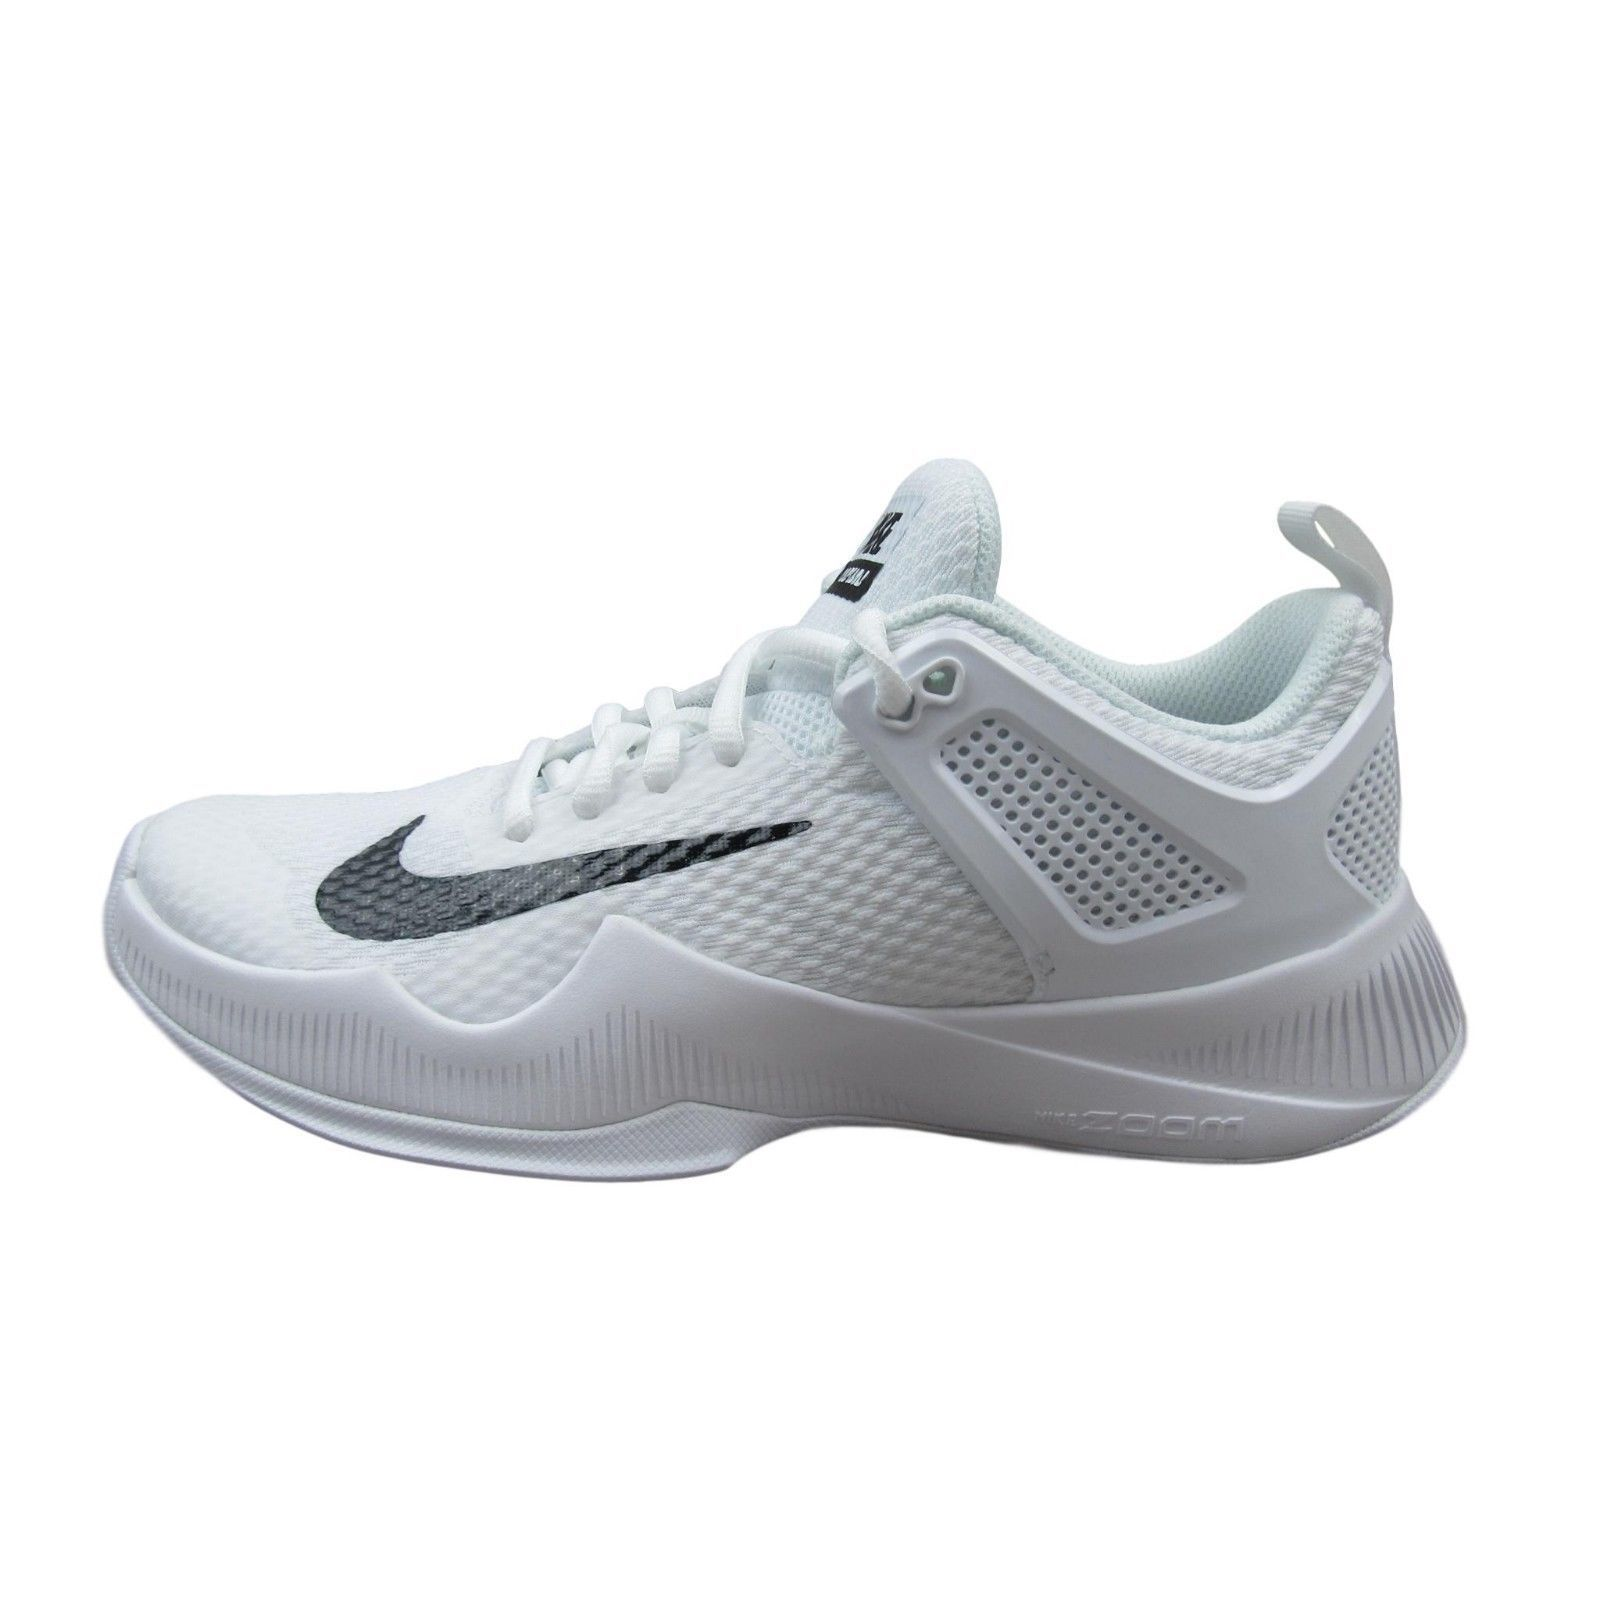 Nike Air Zoom Hyperace Volleyball Shoes Womens 902367 100 White Multiple Size Ebay Nike Nikevolley Nike Shoes Girls Volleyball Shoes Nike Volleyball Shoes